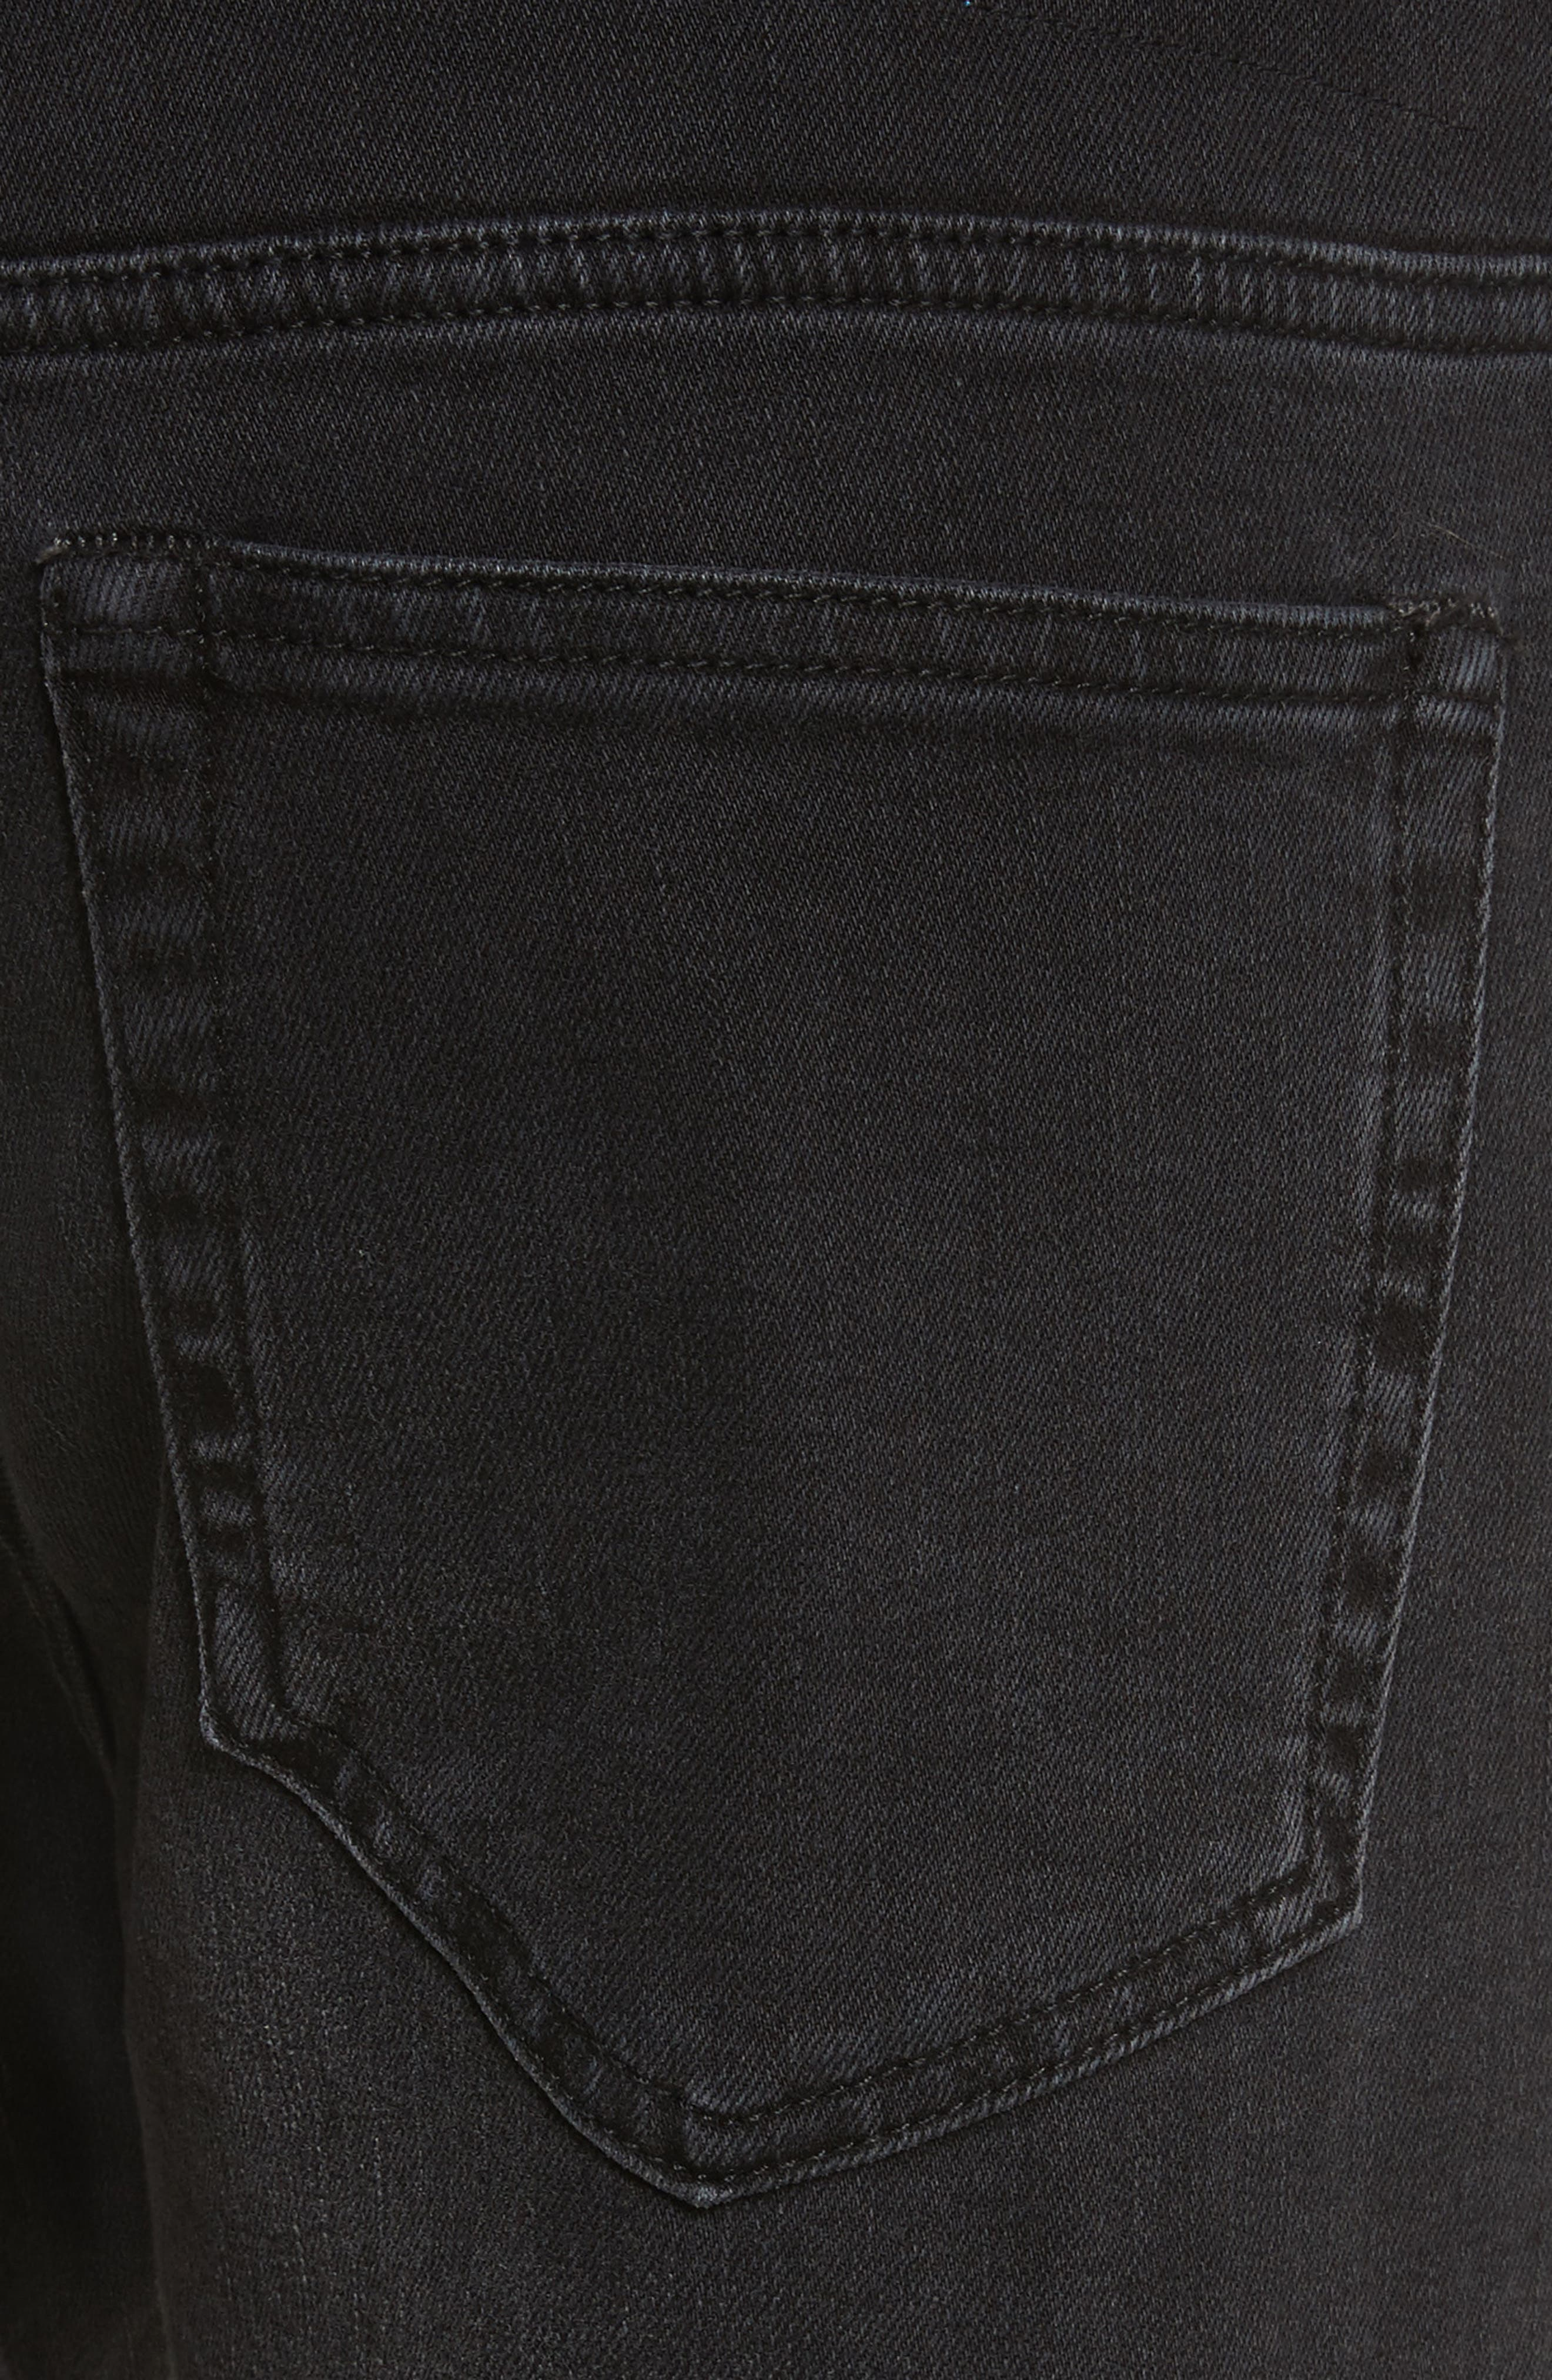 River Used Jeans,                             Alternate thumbnail 4, color,                             151 USED BLACK